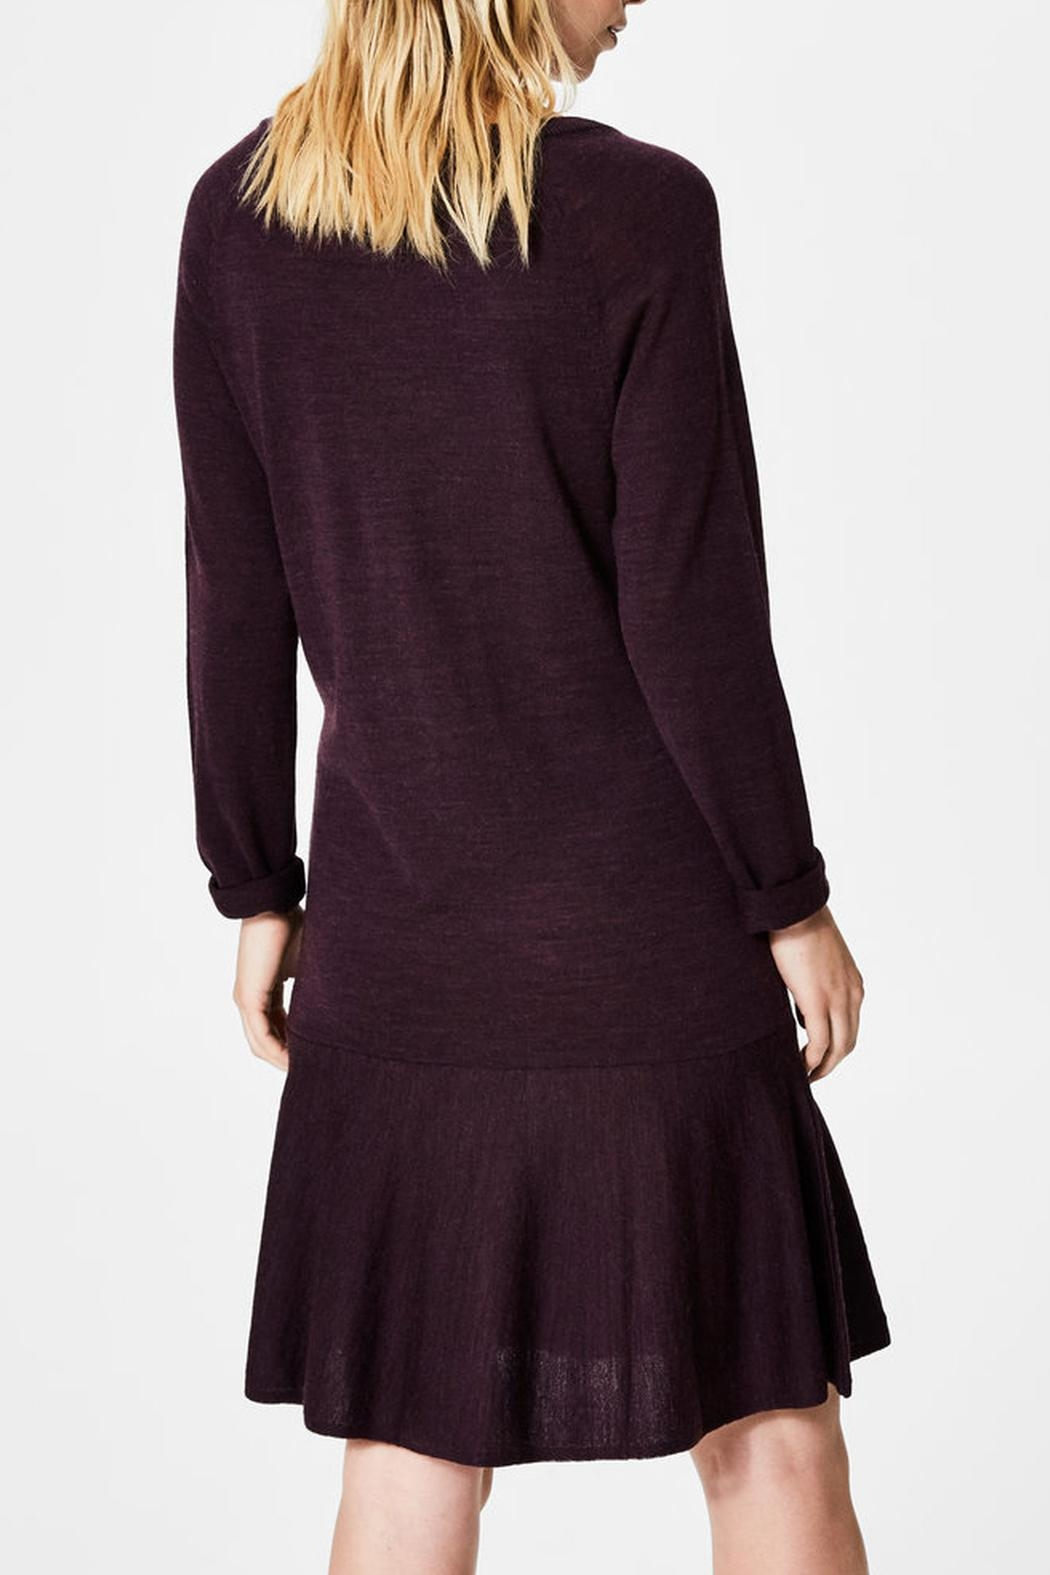 Selected Femme Merino Wool Dress - Side Cropped Image